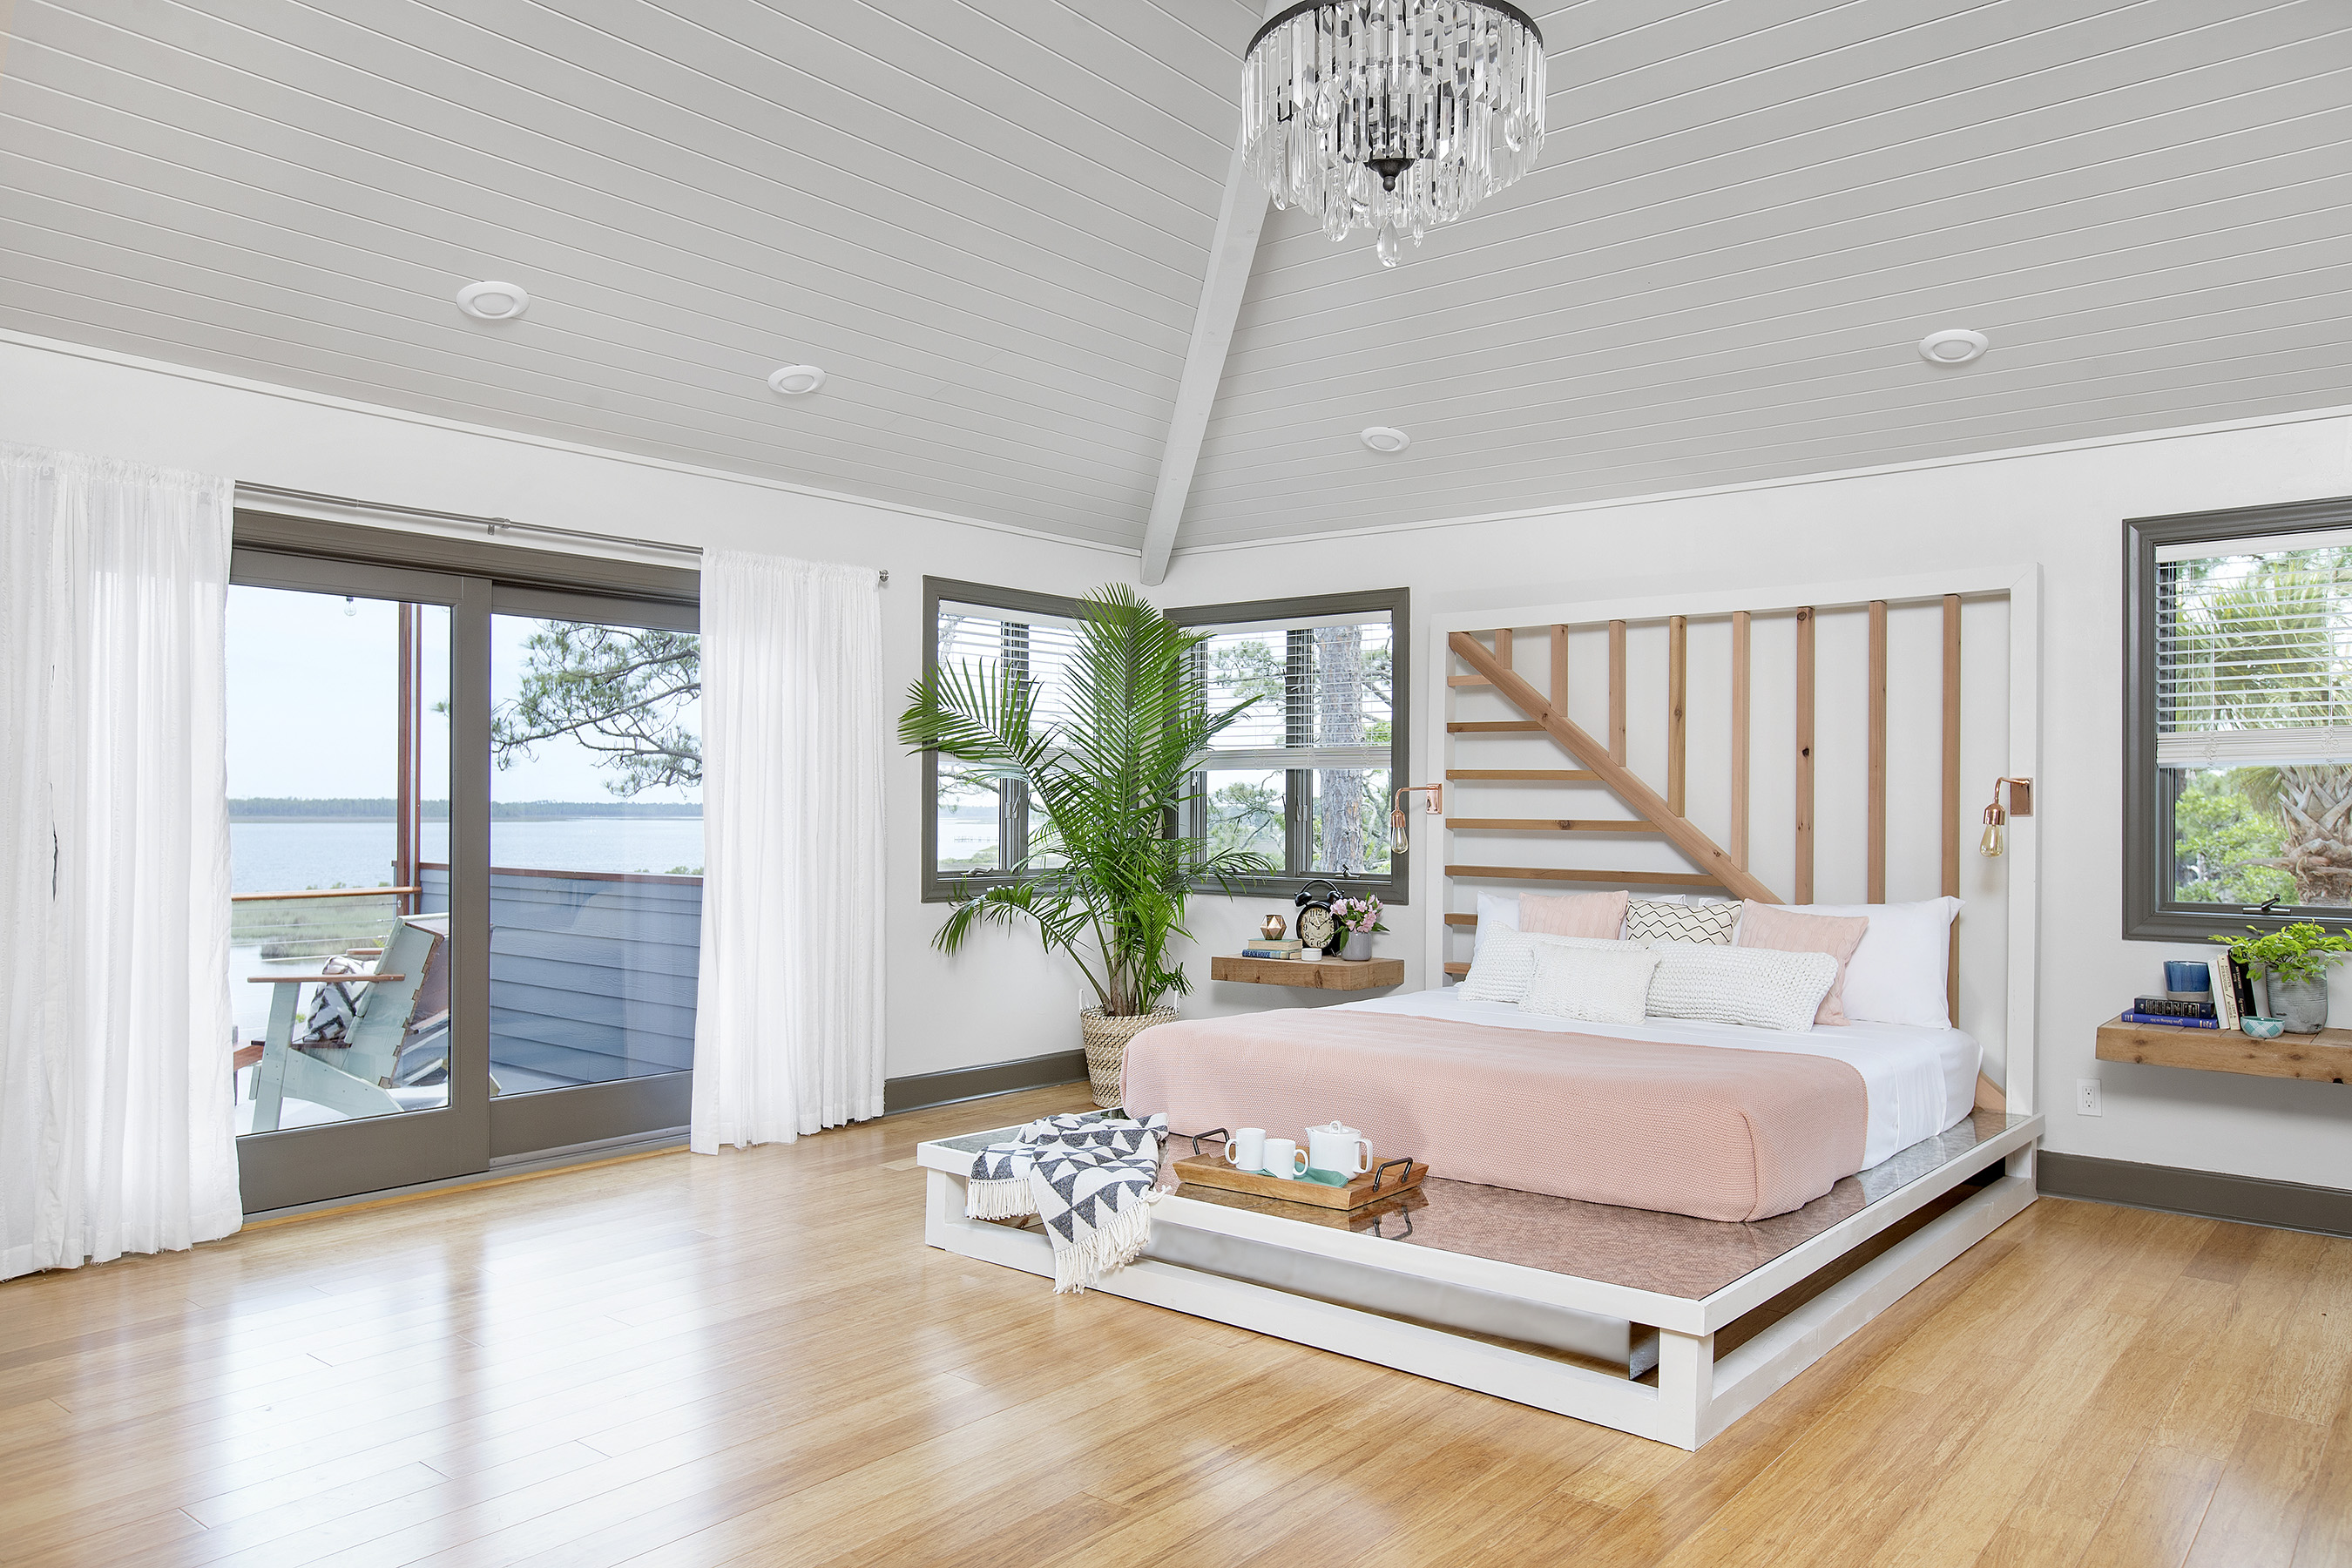 At the DIY Network Blog Cabin 2016, the upstairs master bedroom has a platform bed, custom headboard and roomy spa-like bath all awash in neutral colors exuding tranquil vibes.